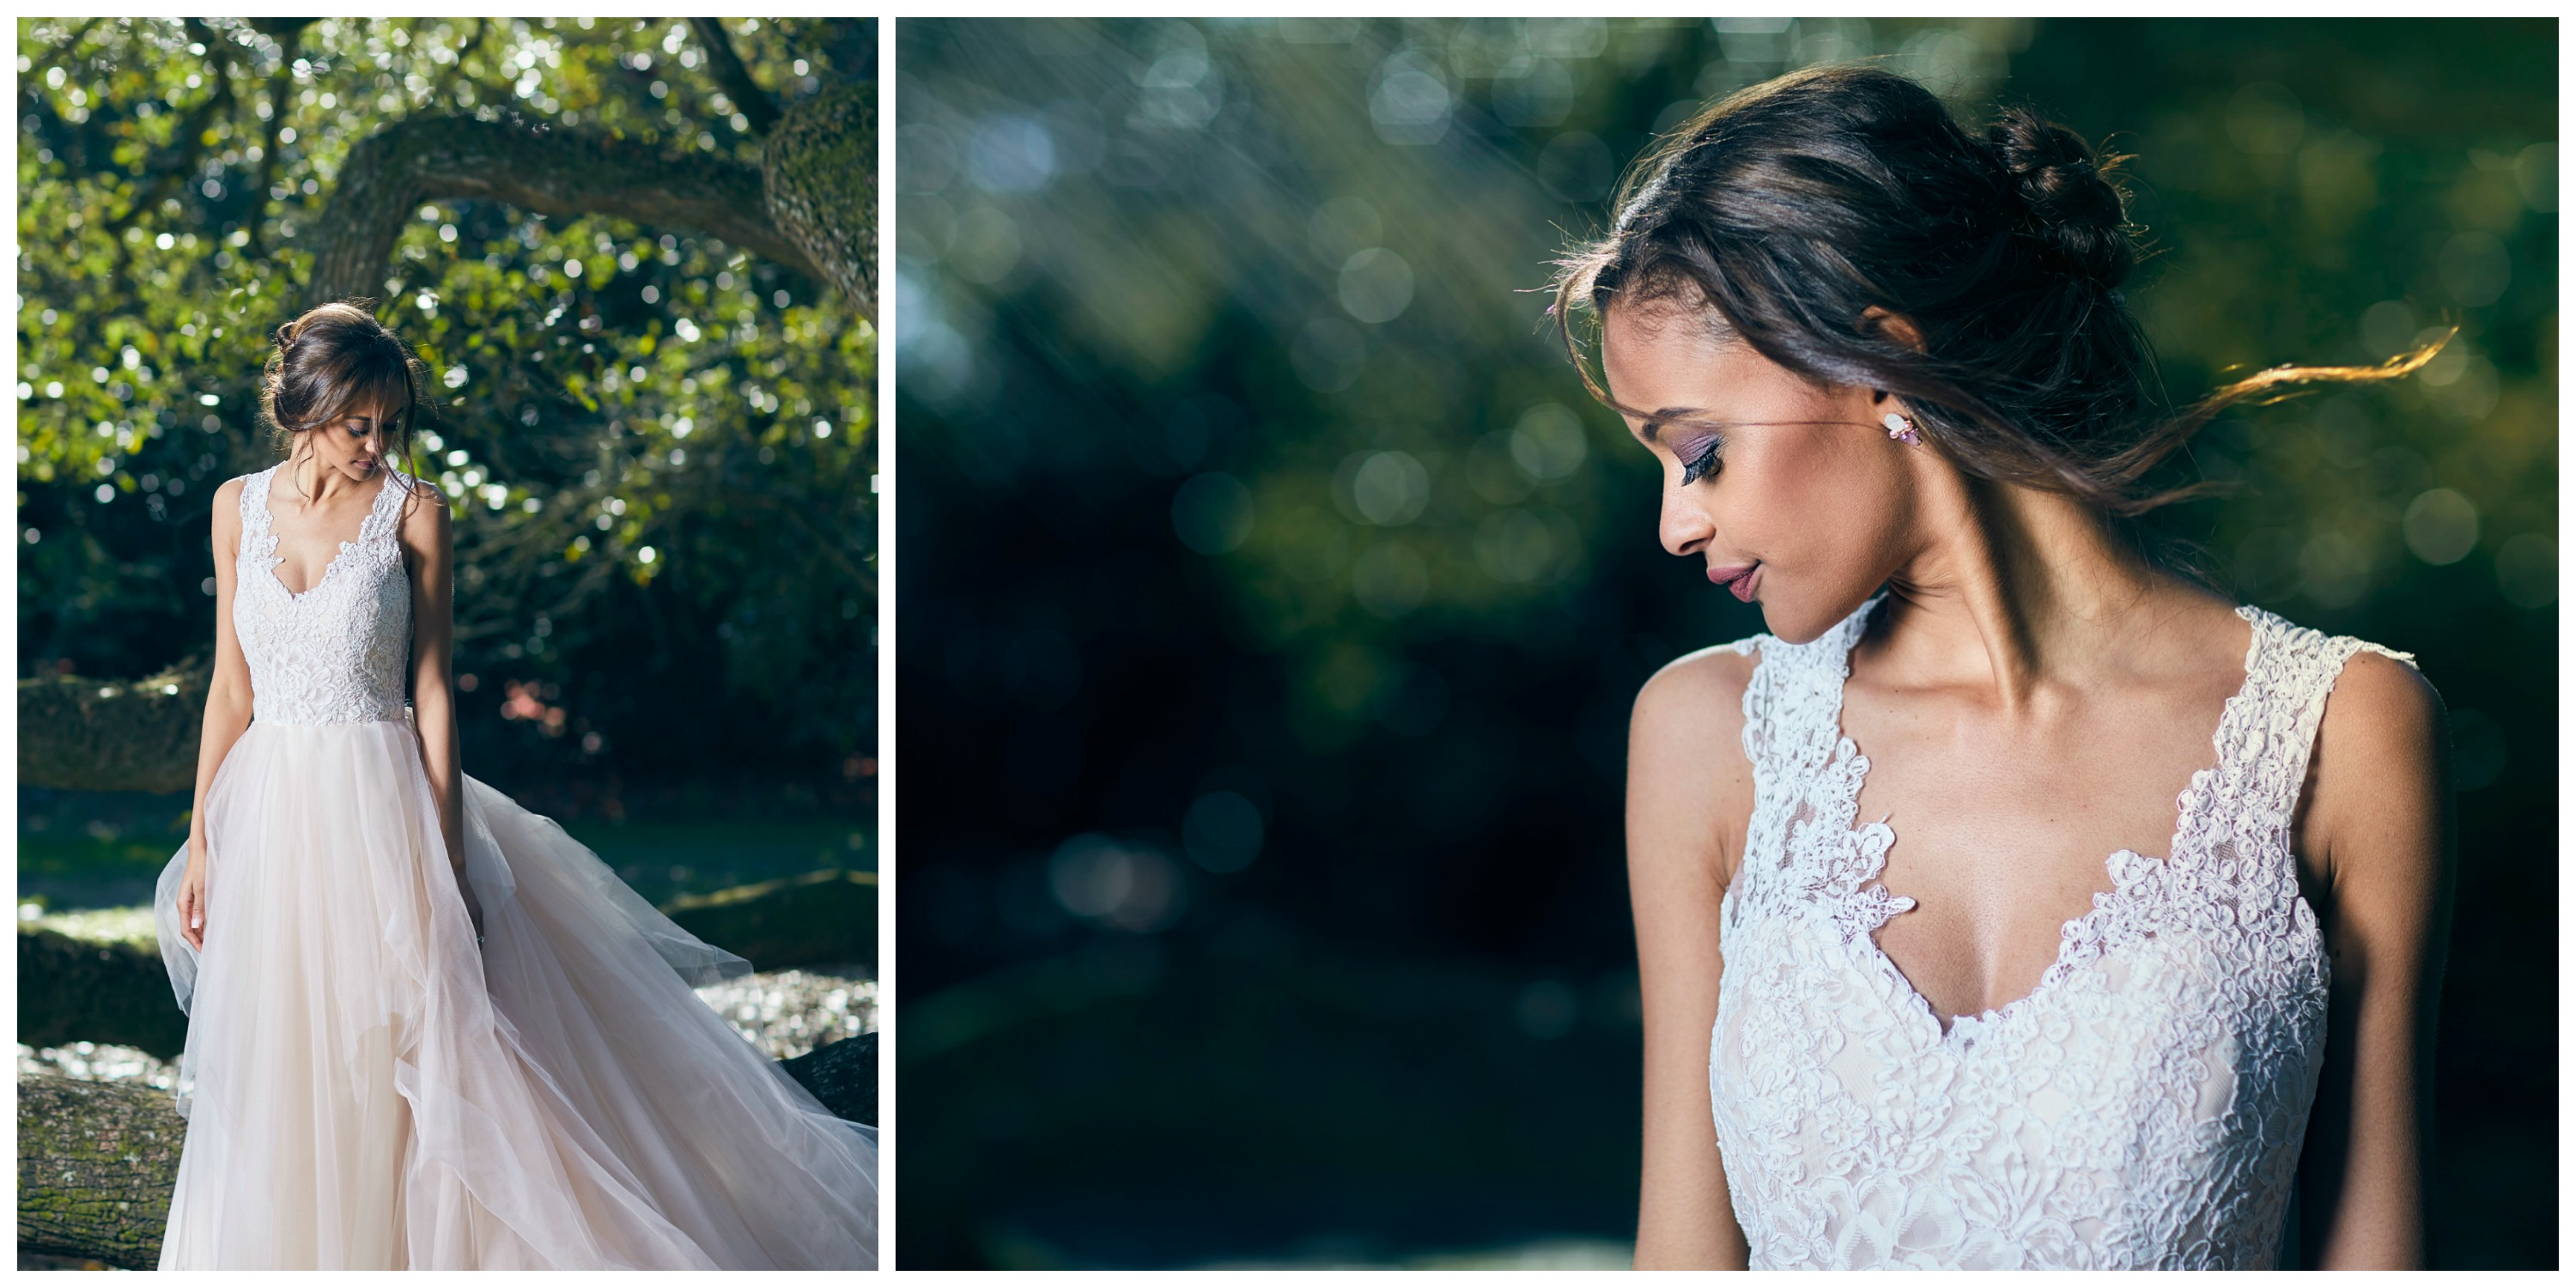 Blushed Nuptials An Intimate Garden Styled Shoot The